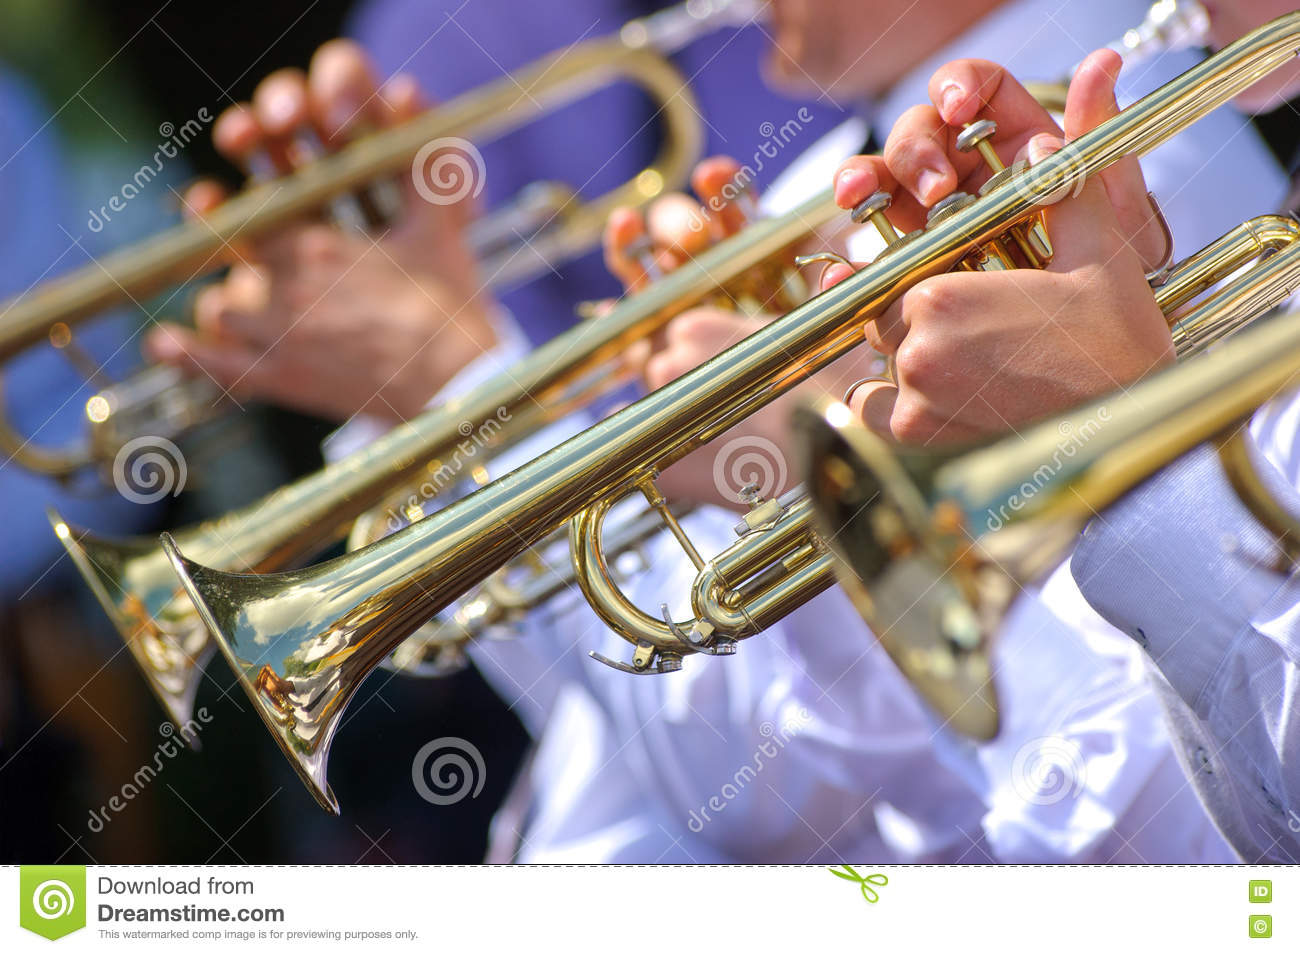 Trumpets in orchestra stock image  Image of song, performance - 78799747